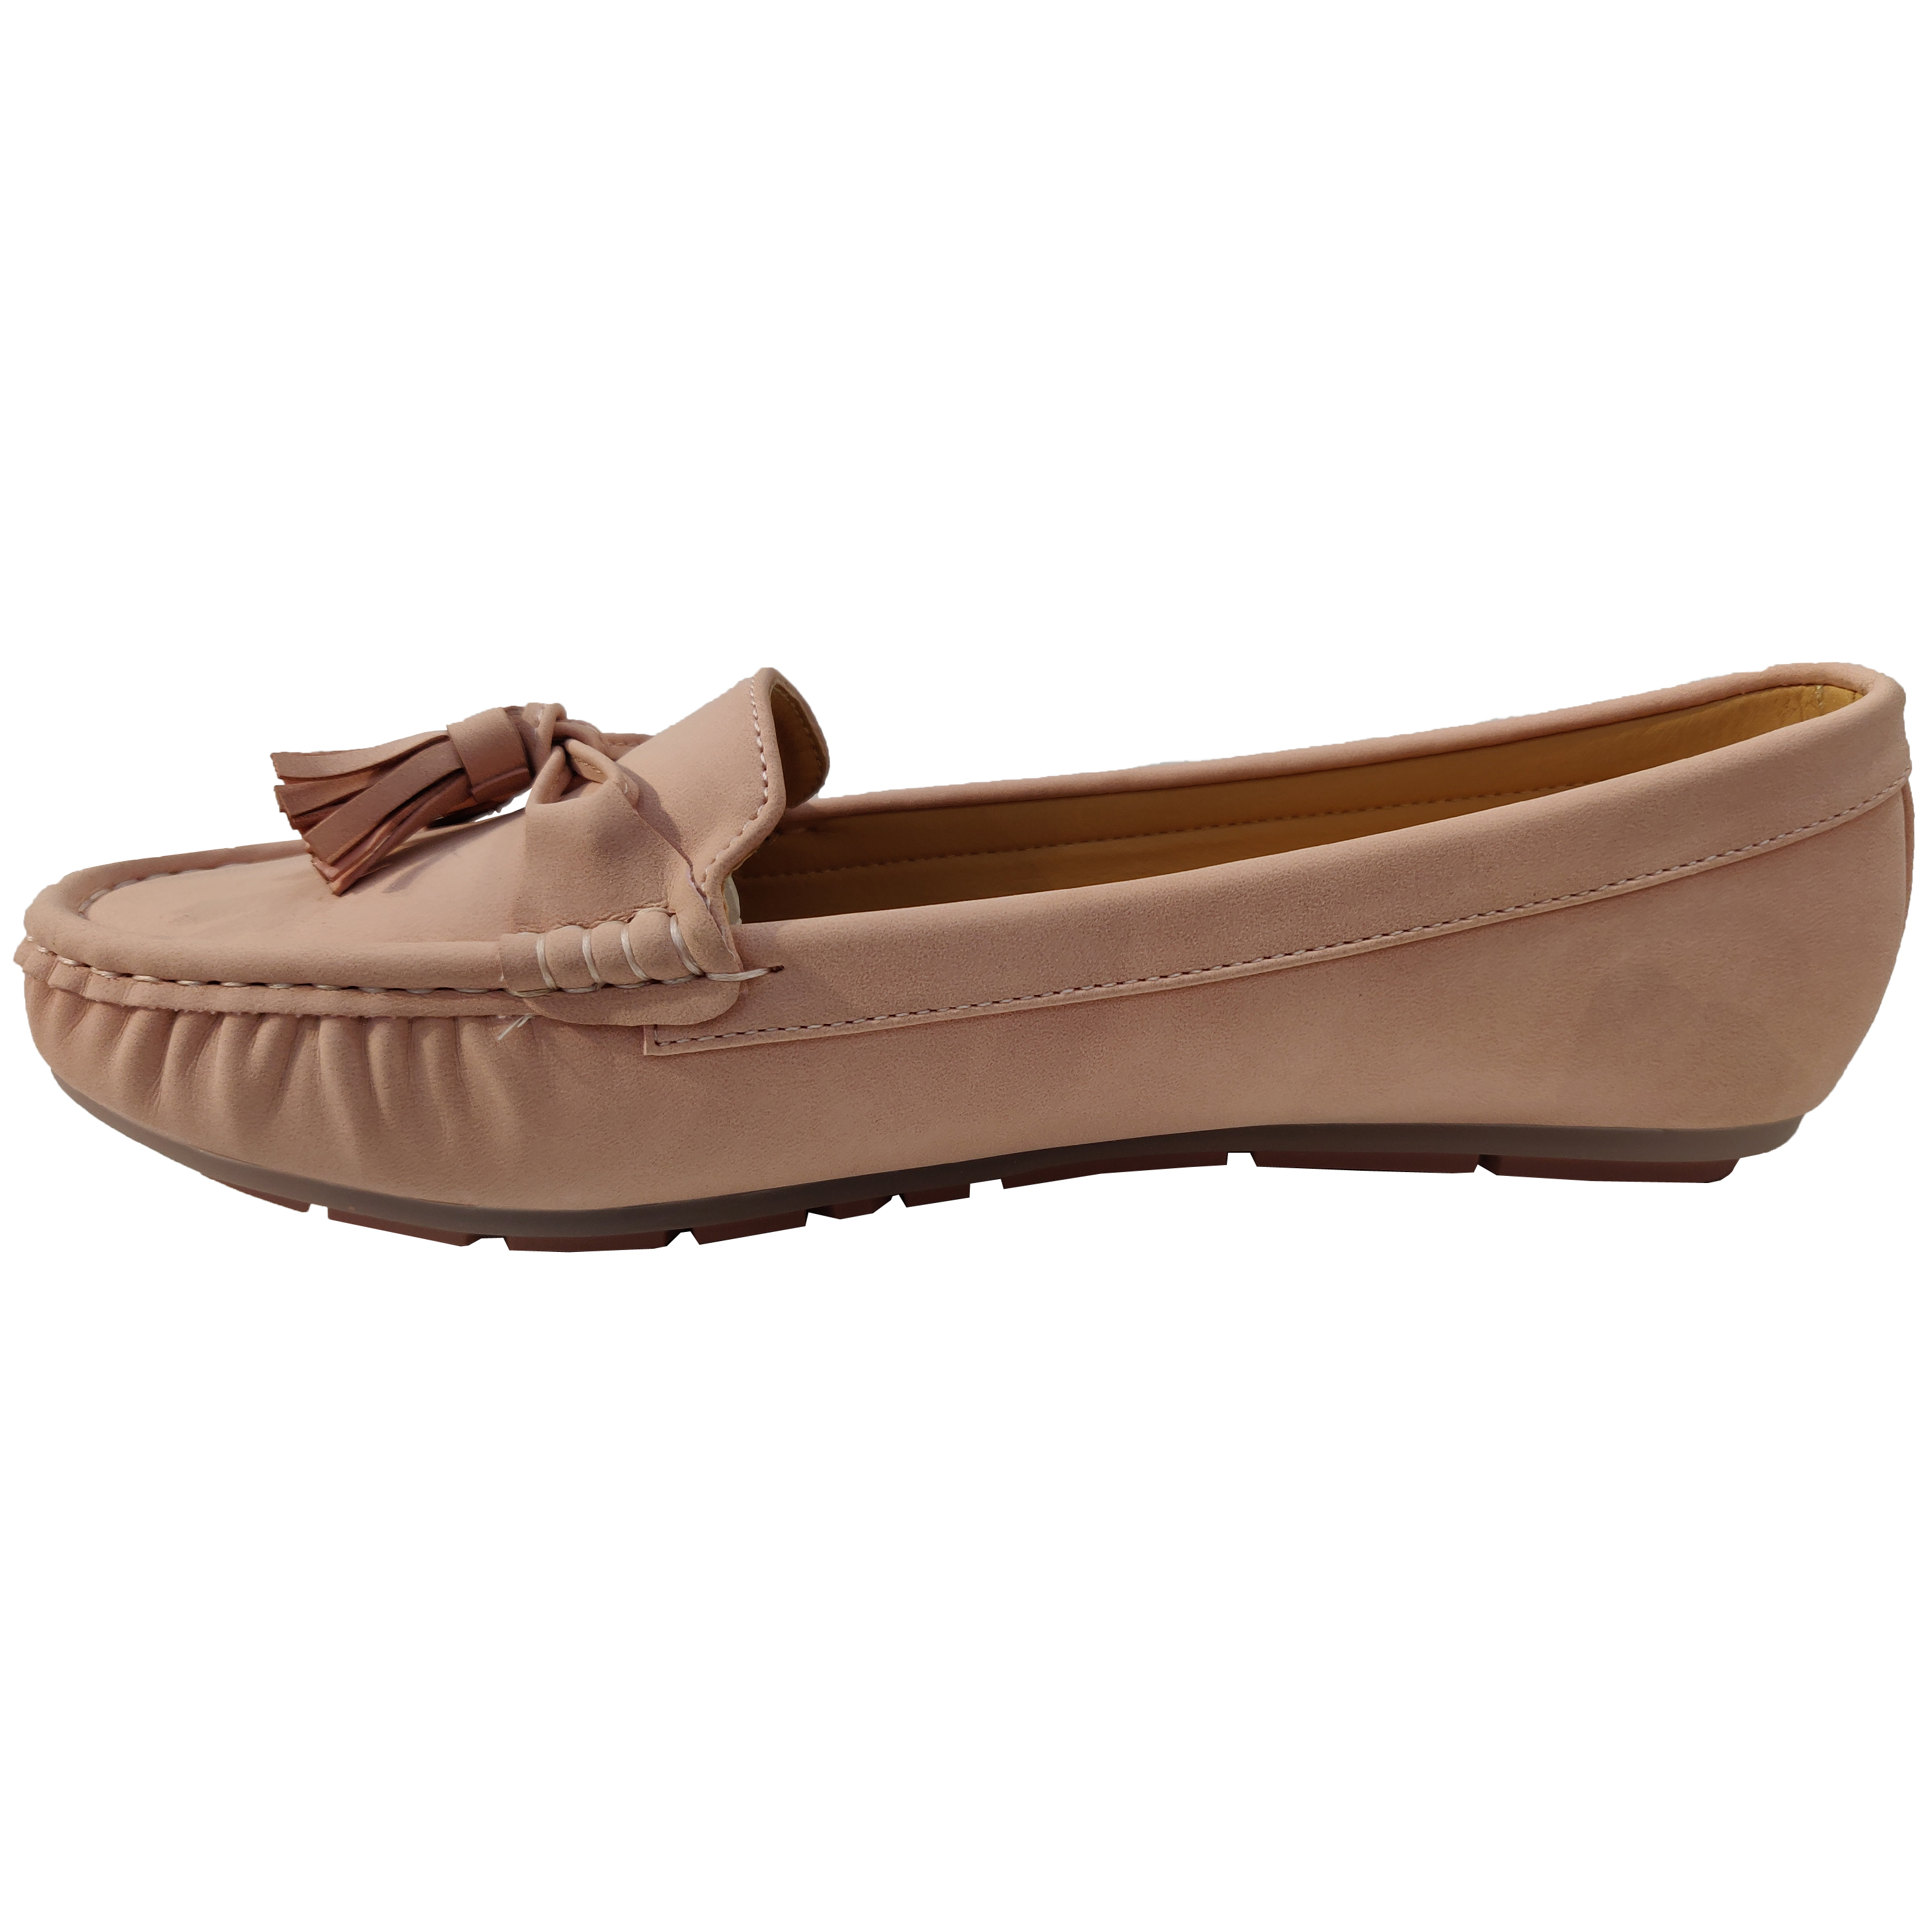 Ladies-Slip-On-Ballerina-Womens-Suede-Look-Pumps-Flat-Bow-Tassels-Shoes-Fashion thumbnail 18